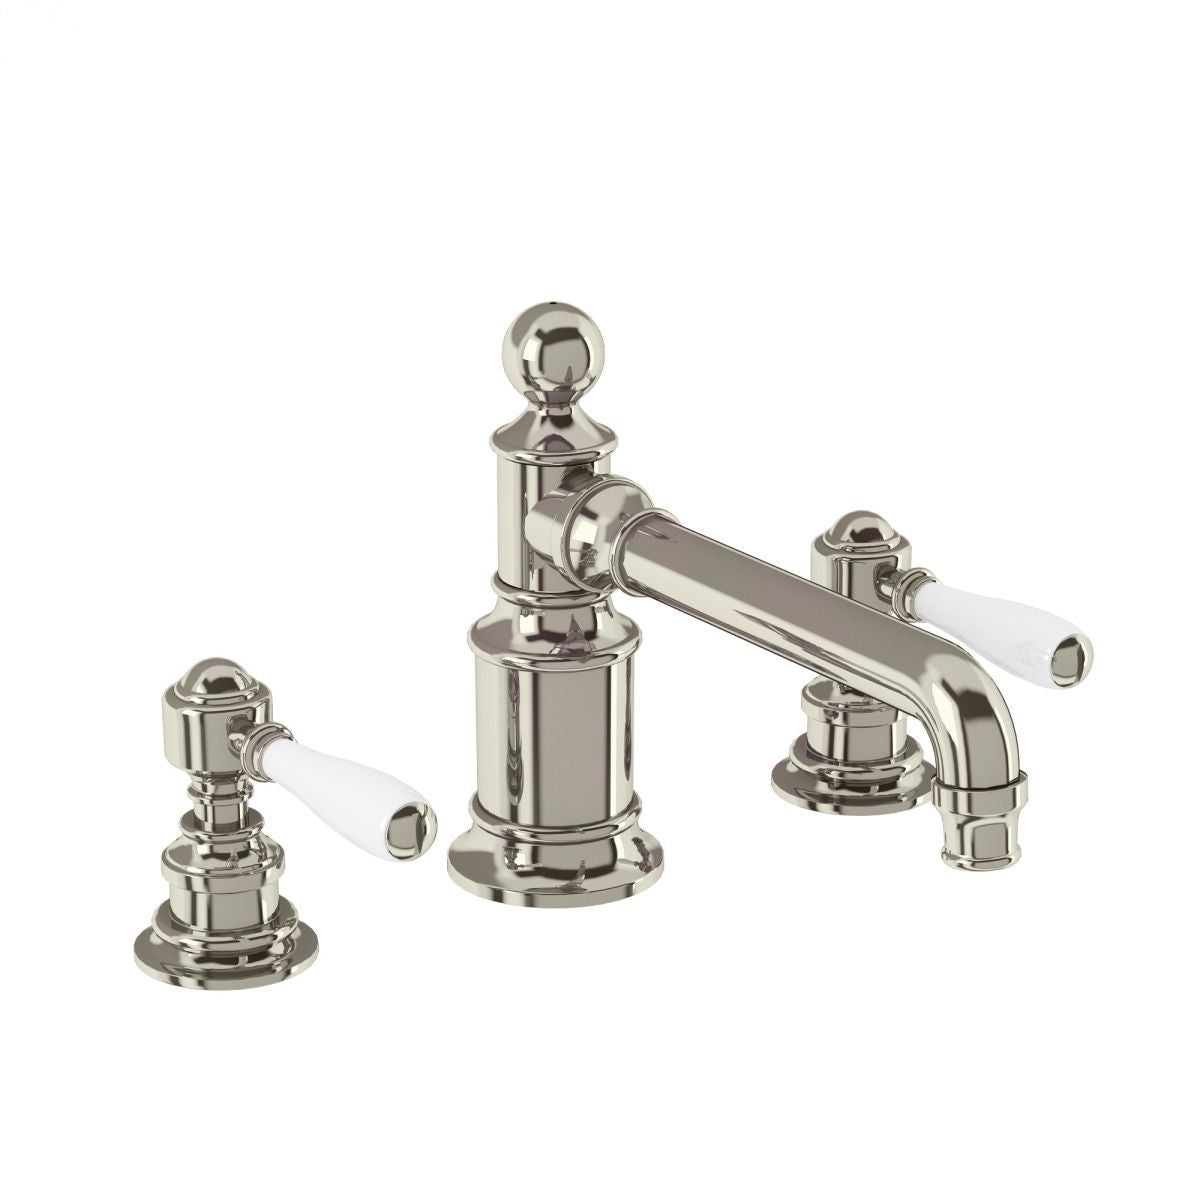 Burlington Arcade Nickel 3 Hole Deck Mounted Basin Mixer